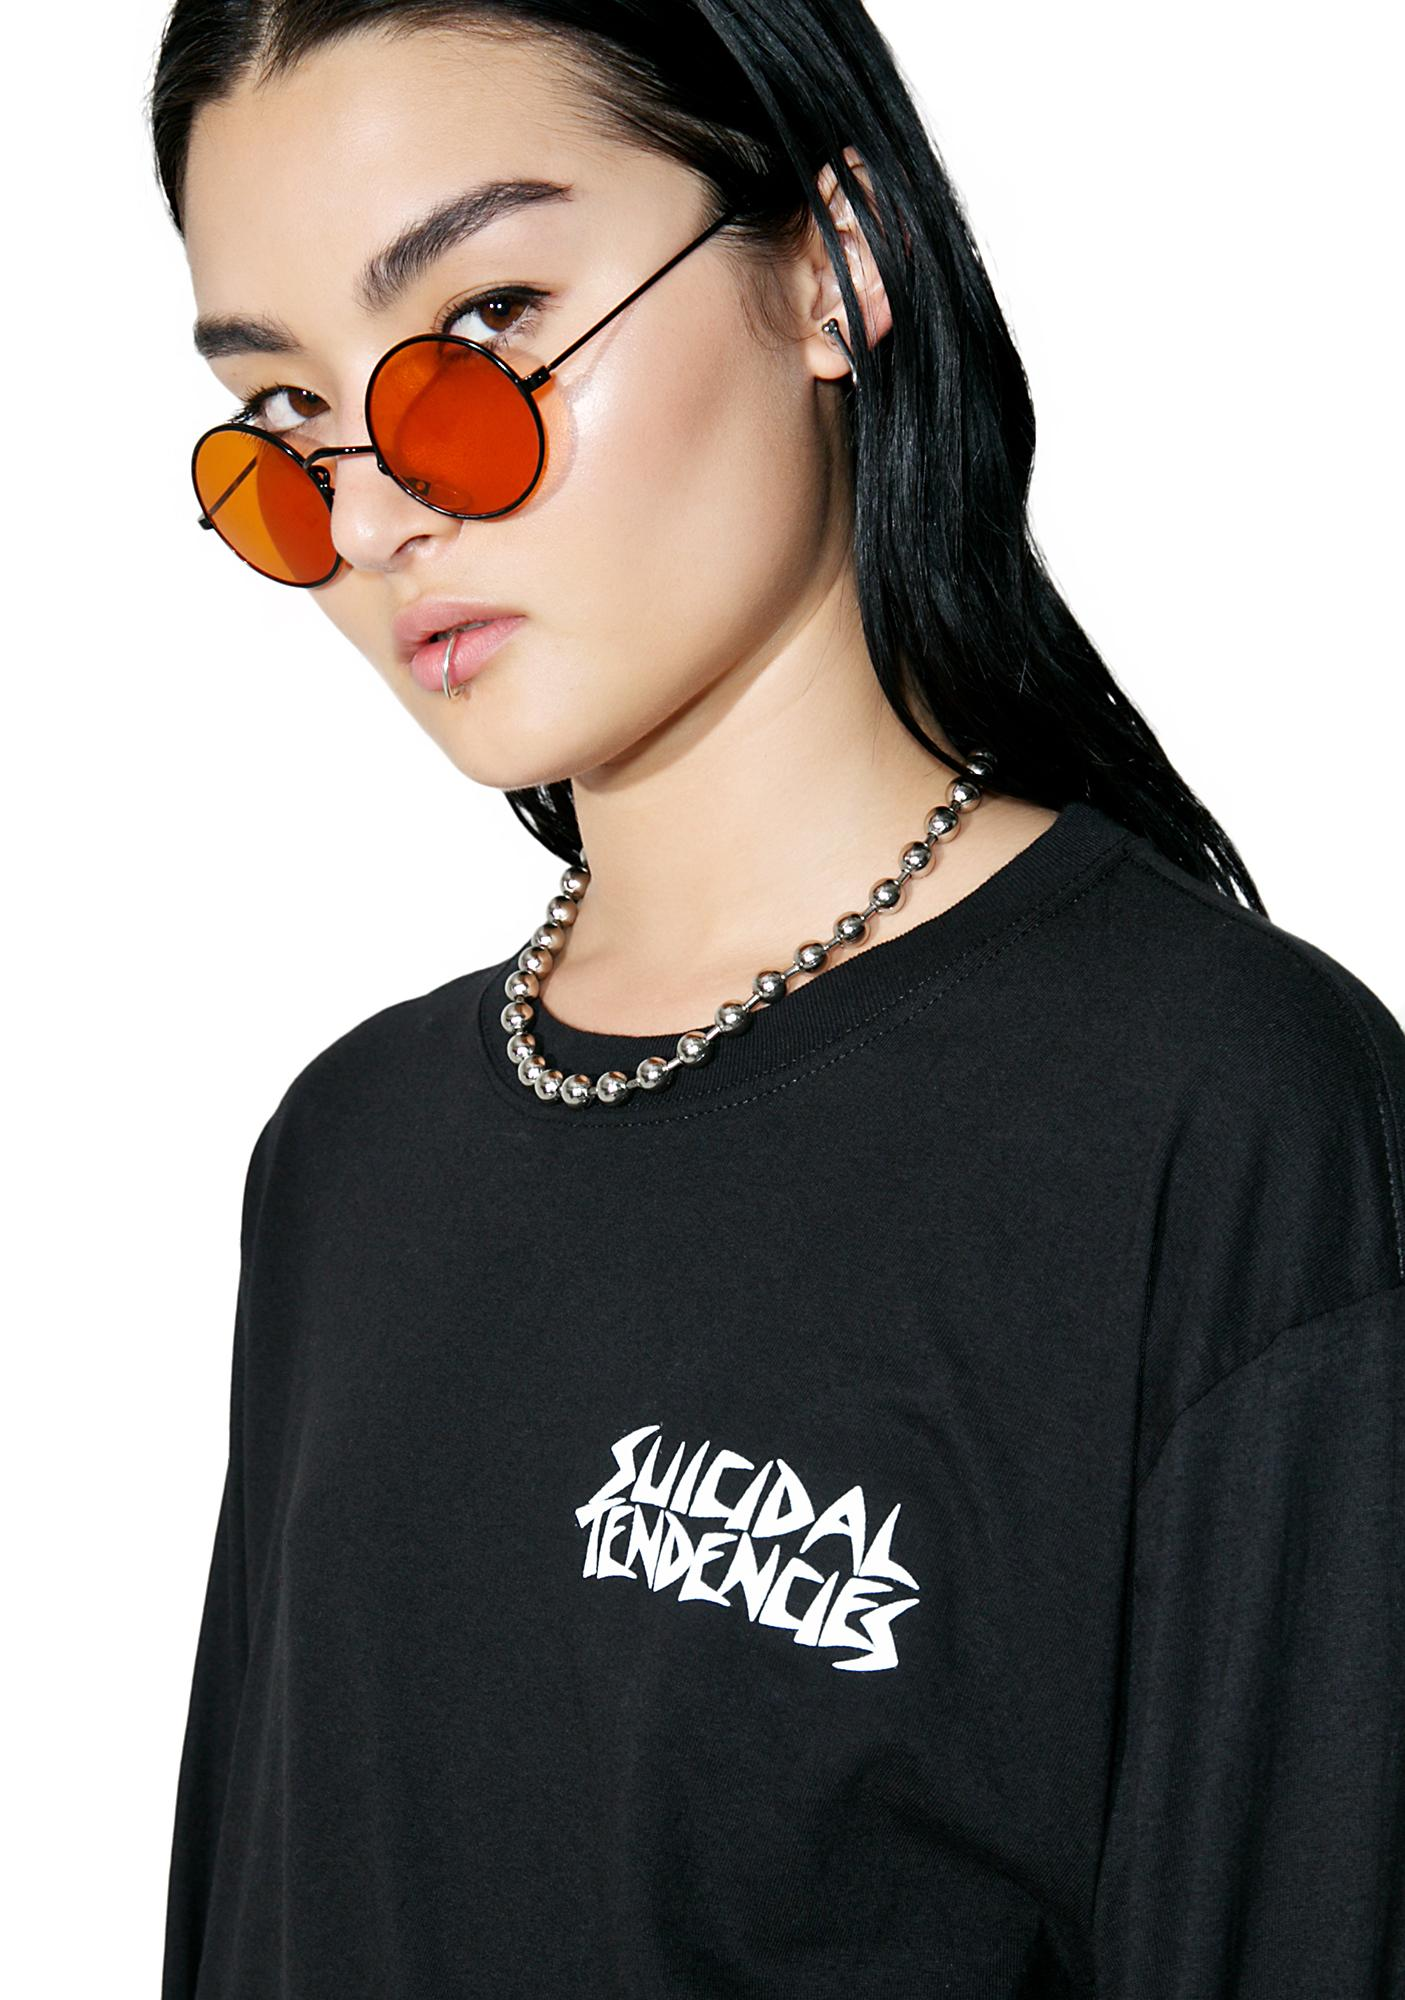 Suicidal Tendencies x Dog Town Longsleeve